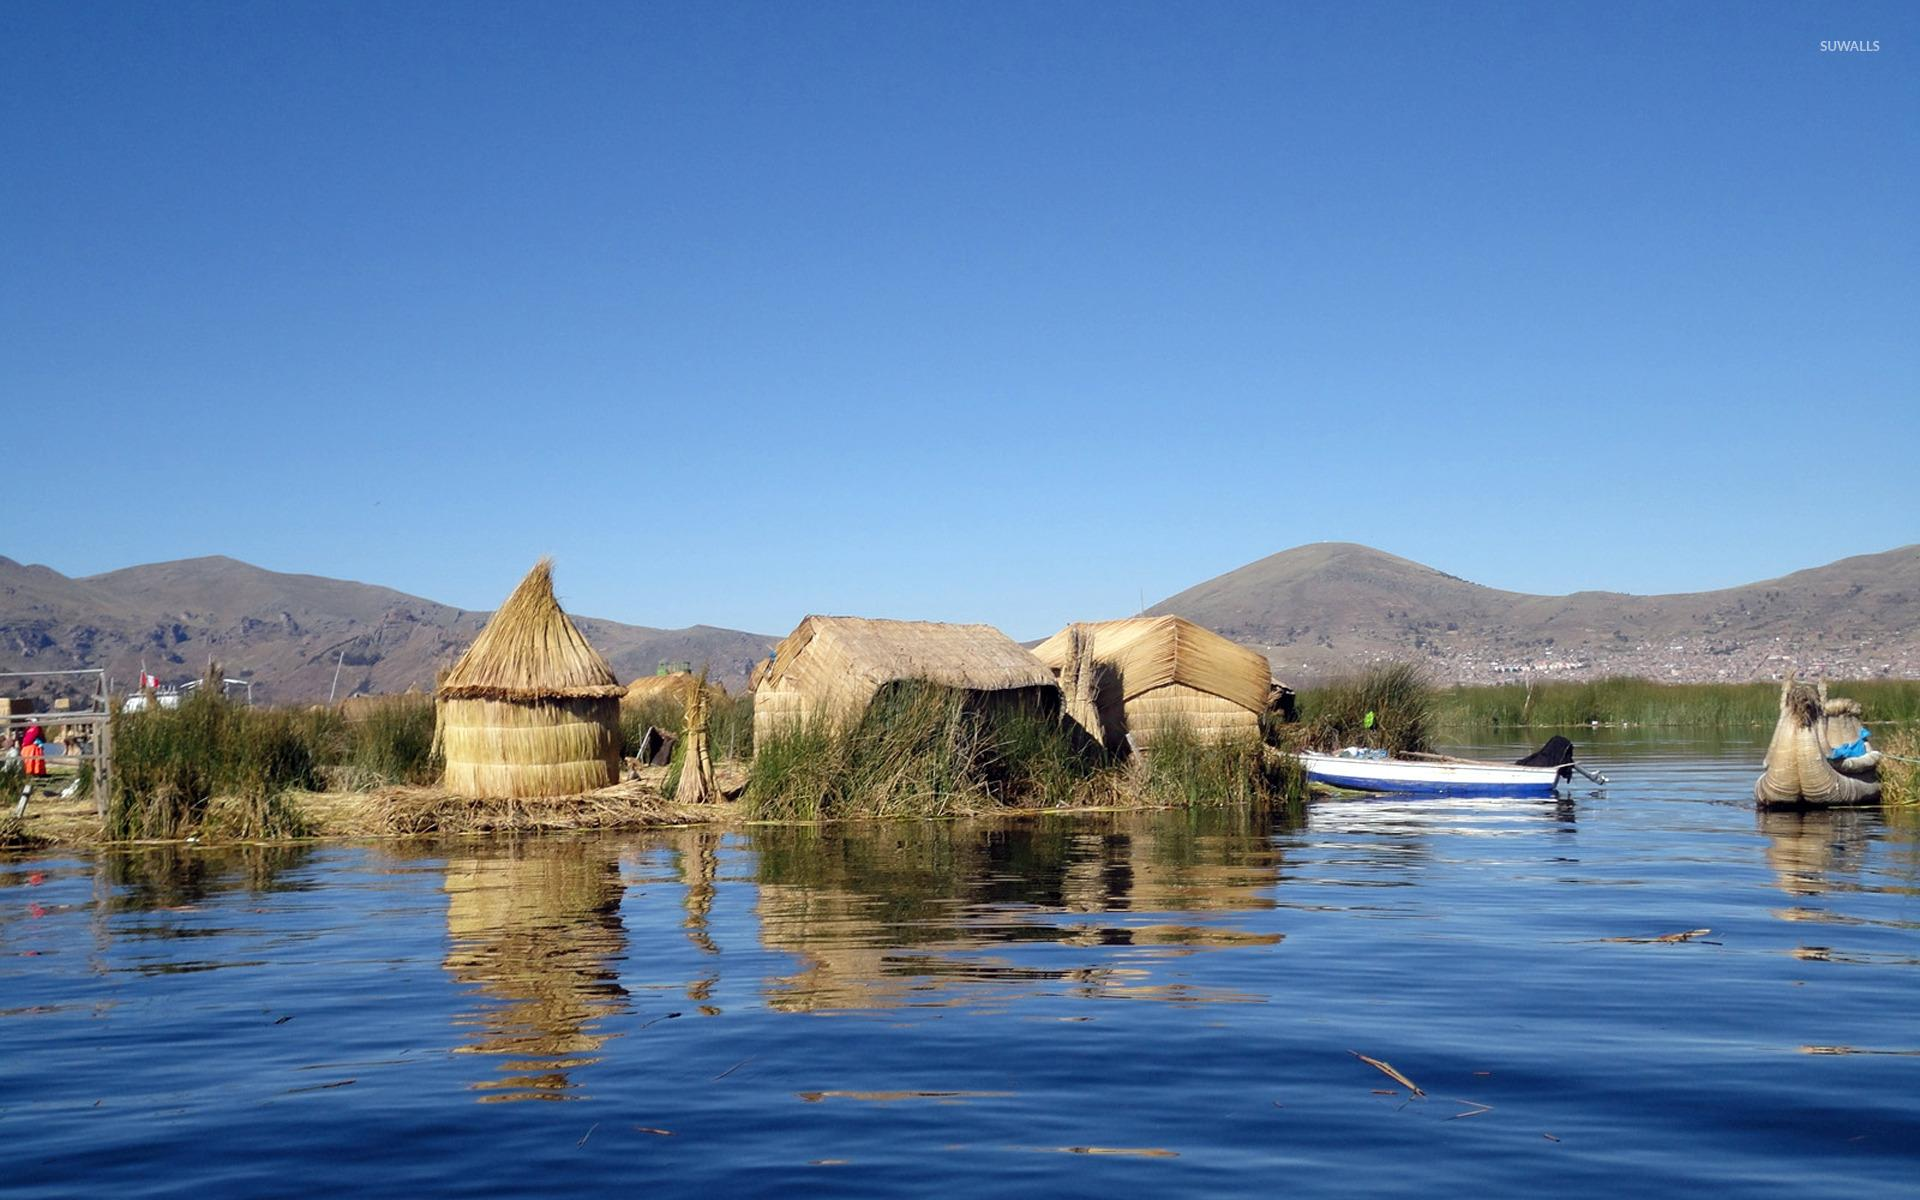 Lake Titicaca wallpaper - World wallpapers - #13757